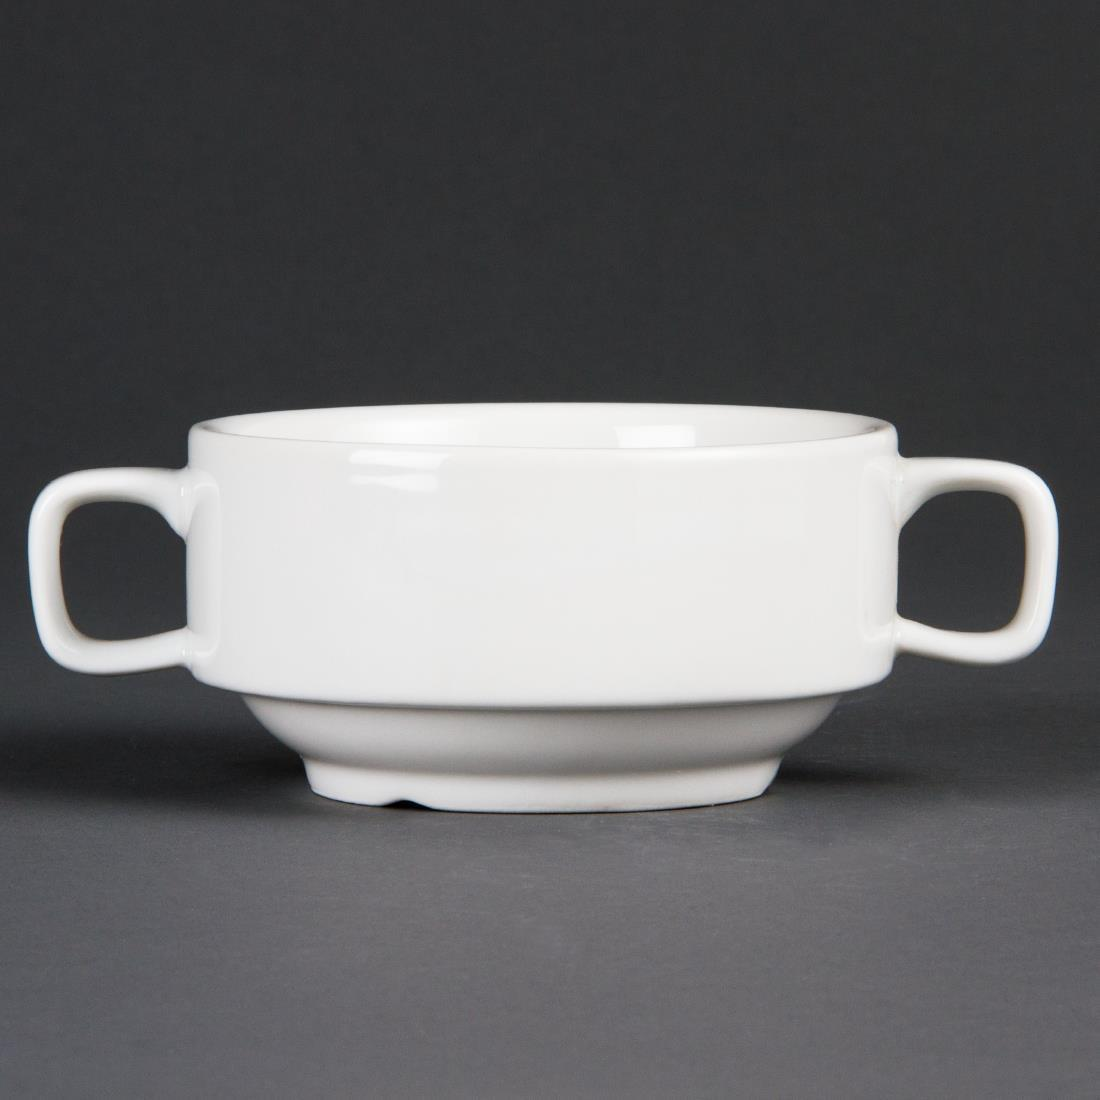 Olympia Whiteware Soup Bowls With Handles 400ml